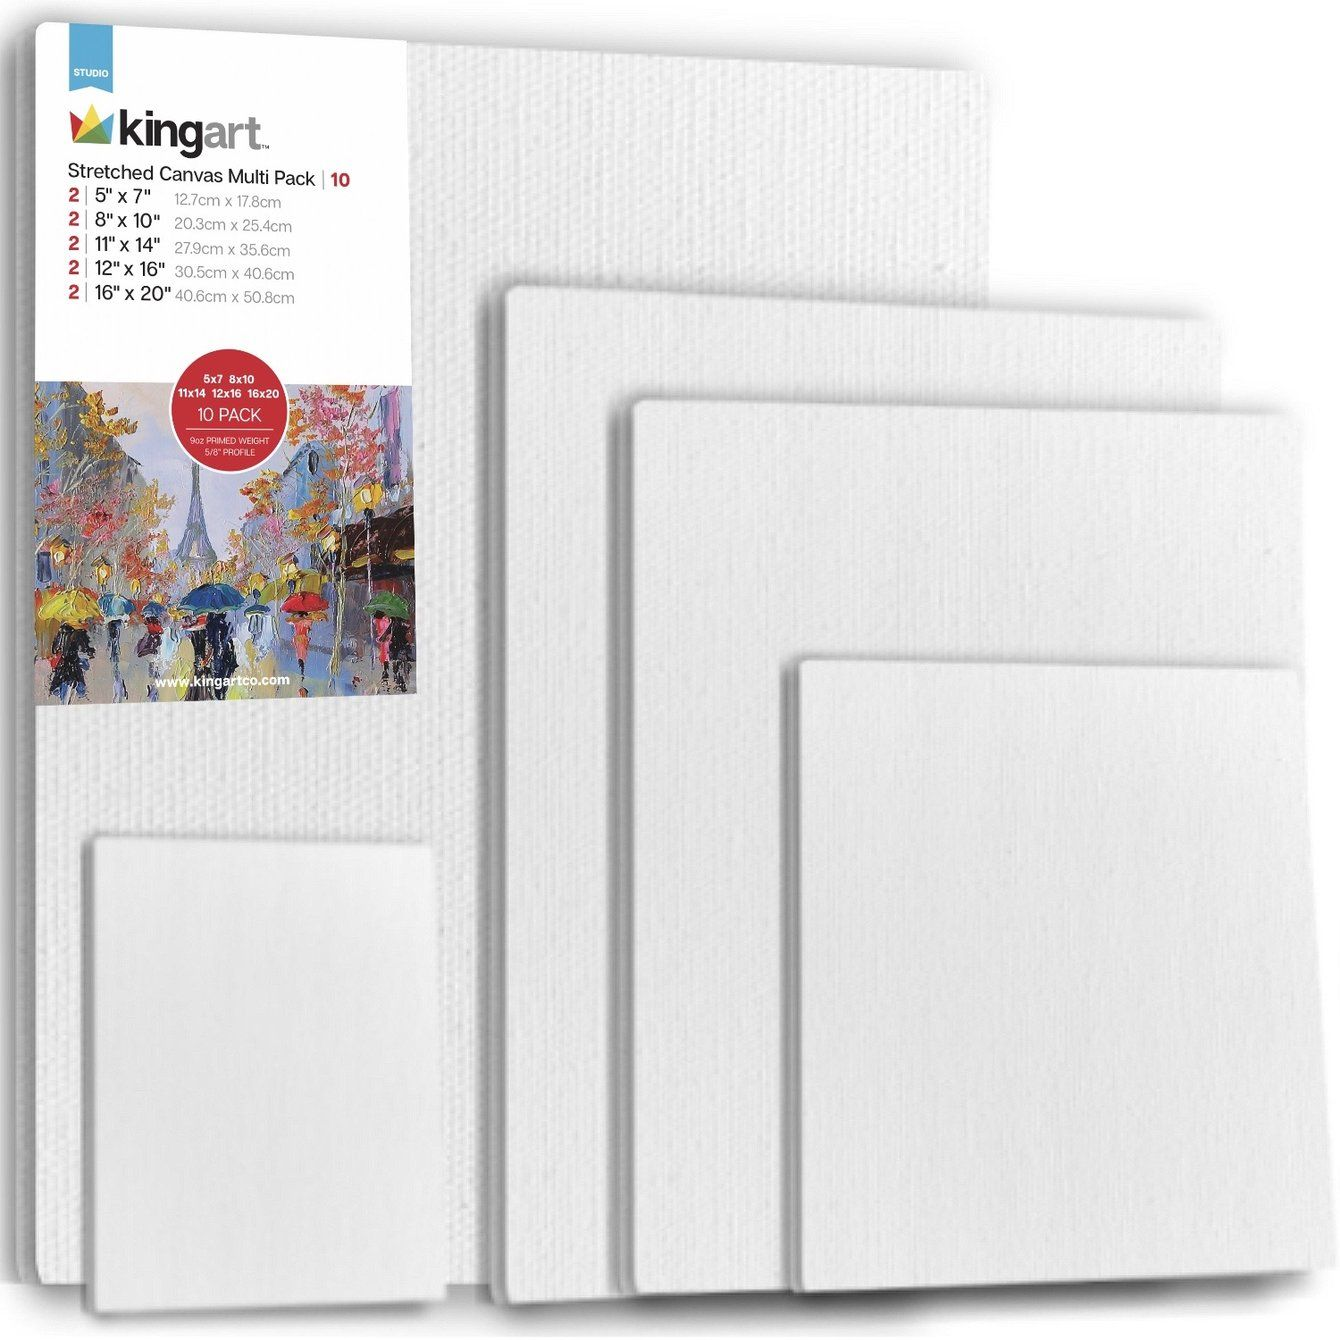 9 x 28 Boards Multi-Pack 5 x 7 8 x 10 Pre-Primed Painting Canvas Panels